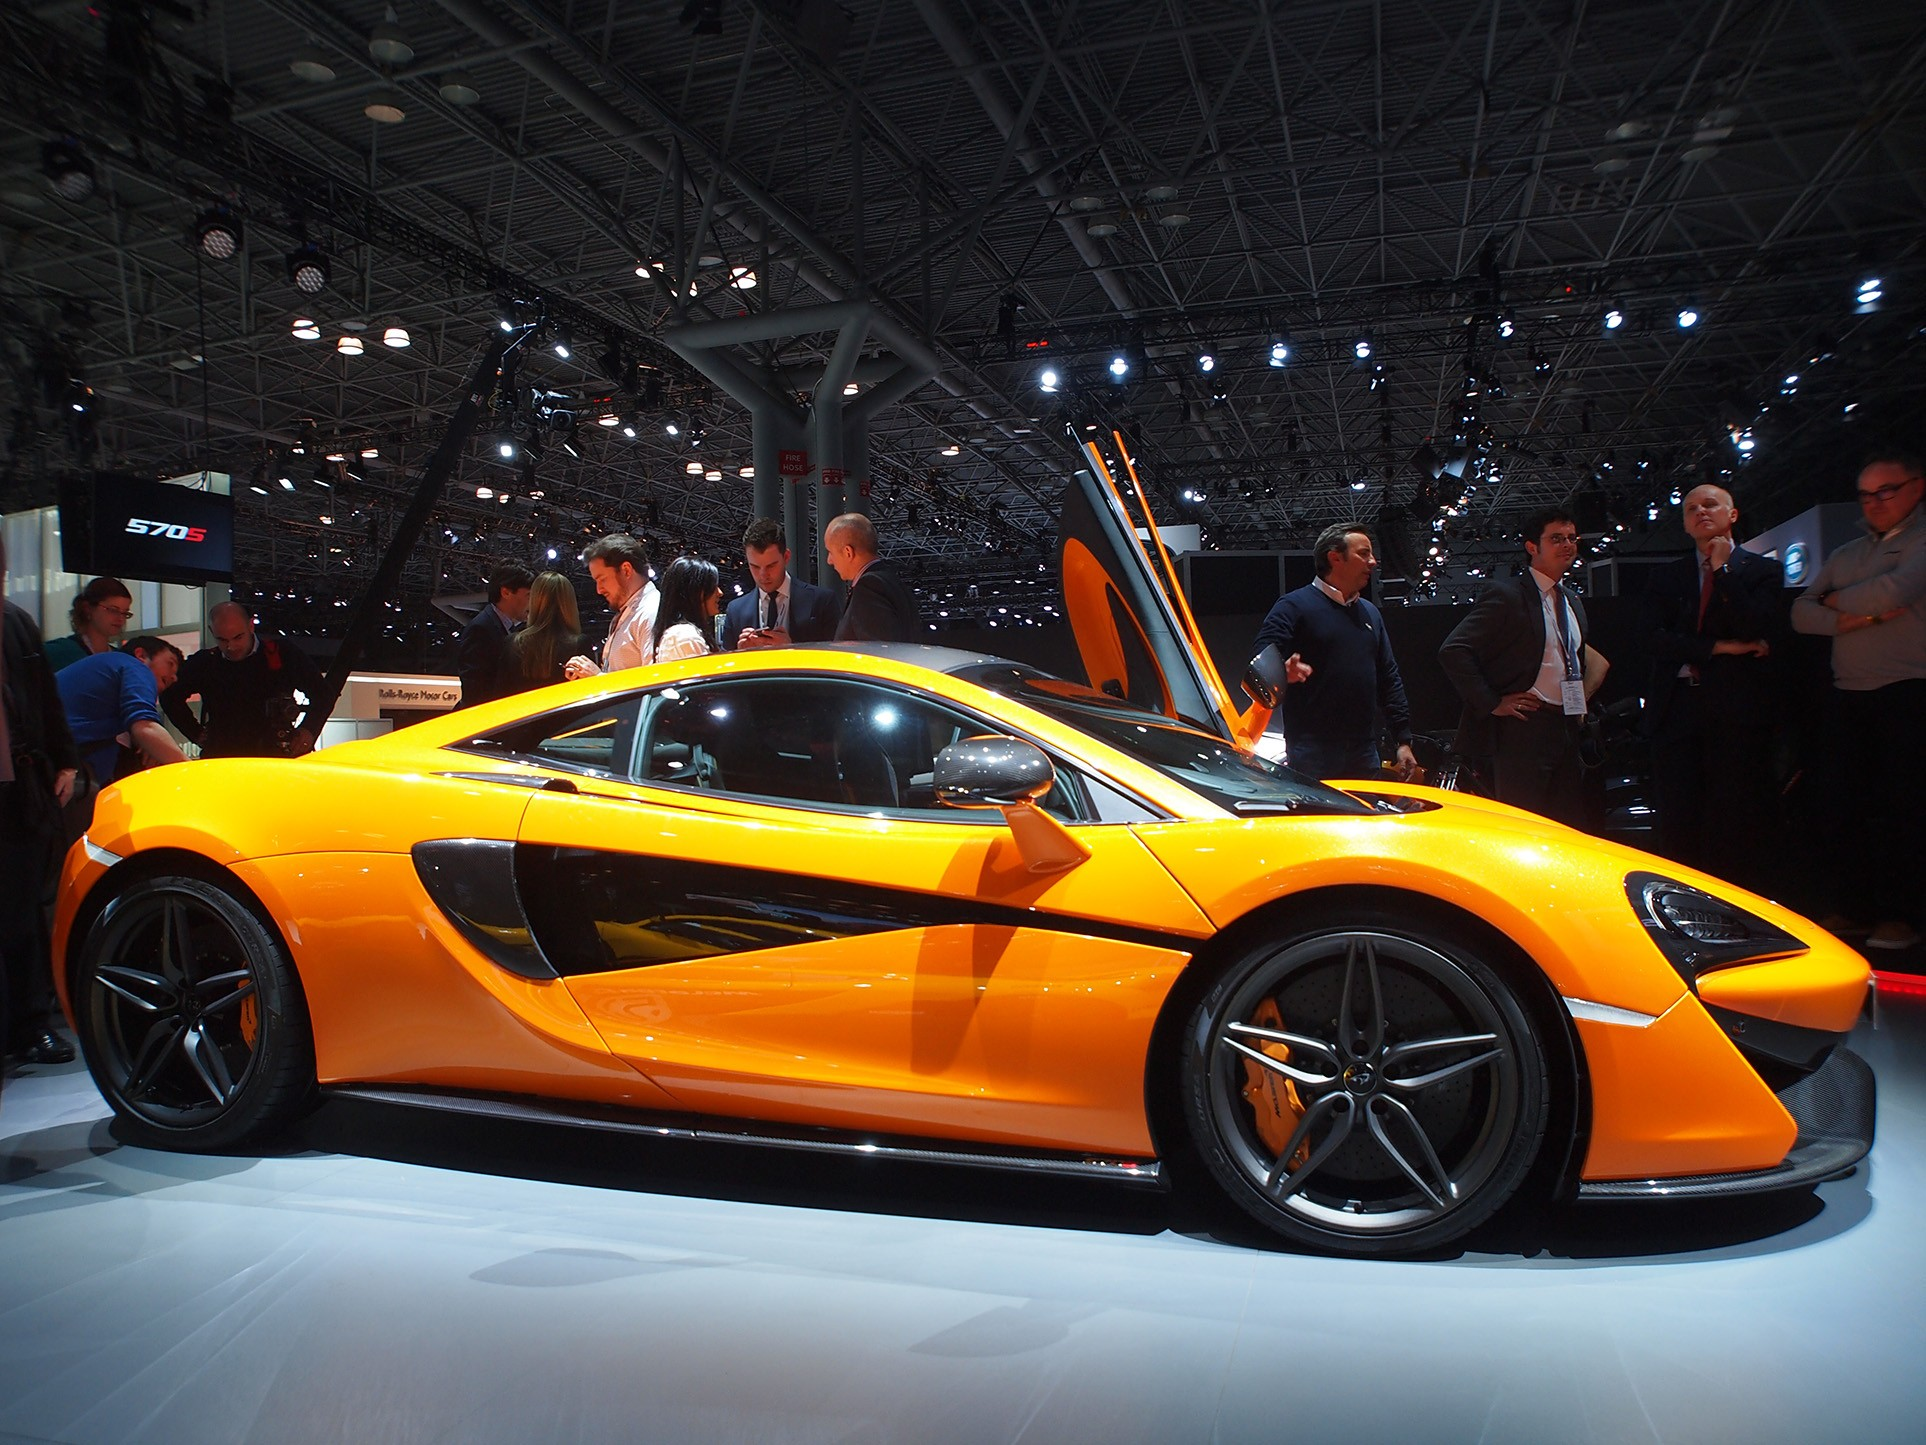 Mclaren To Unveil A Cheaper 540c Model In Shanghai